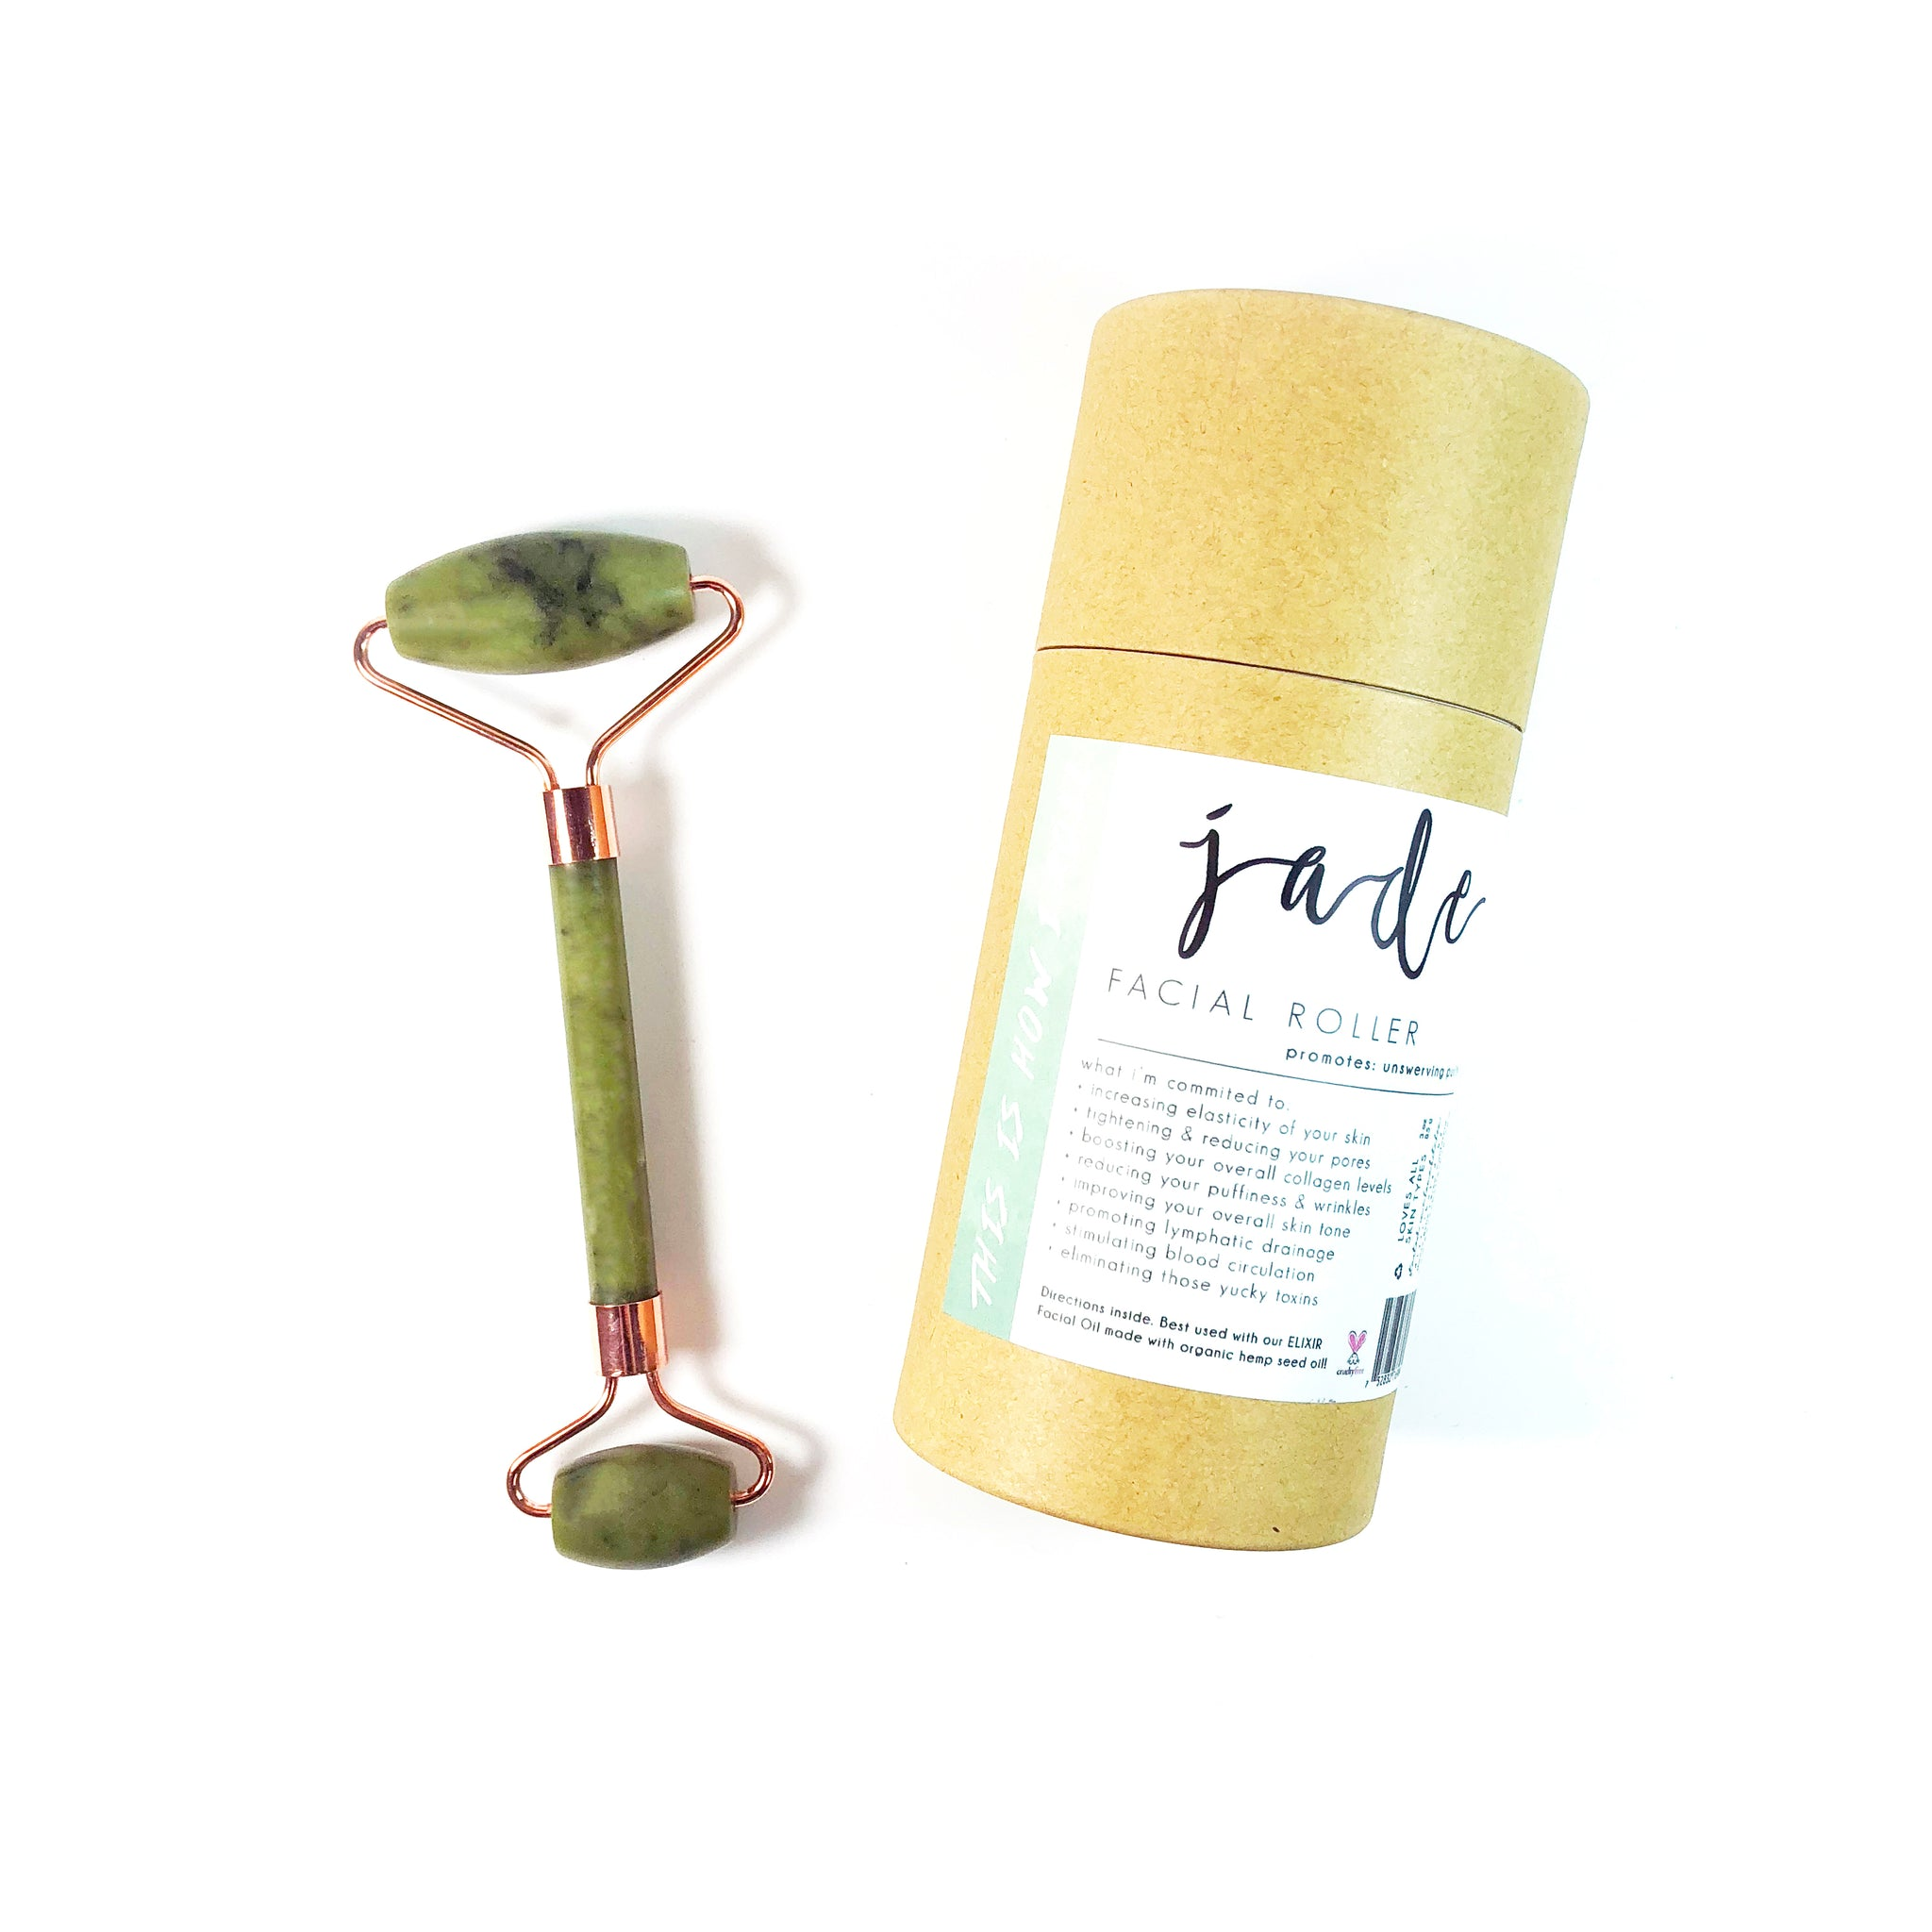 Jade Facial Roller | Facial Beauty Tool | Skin Care